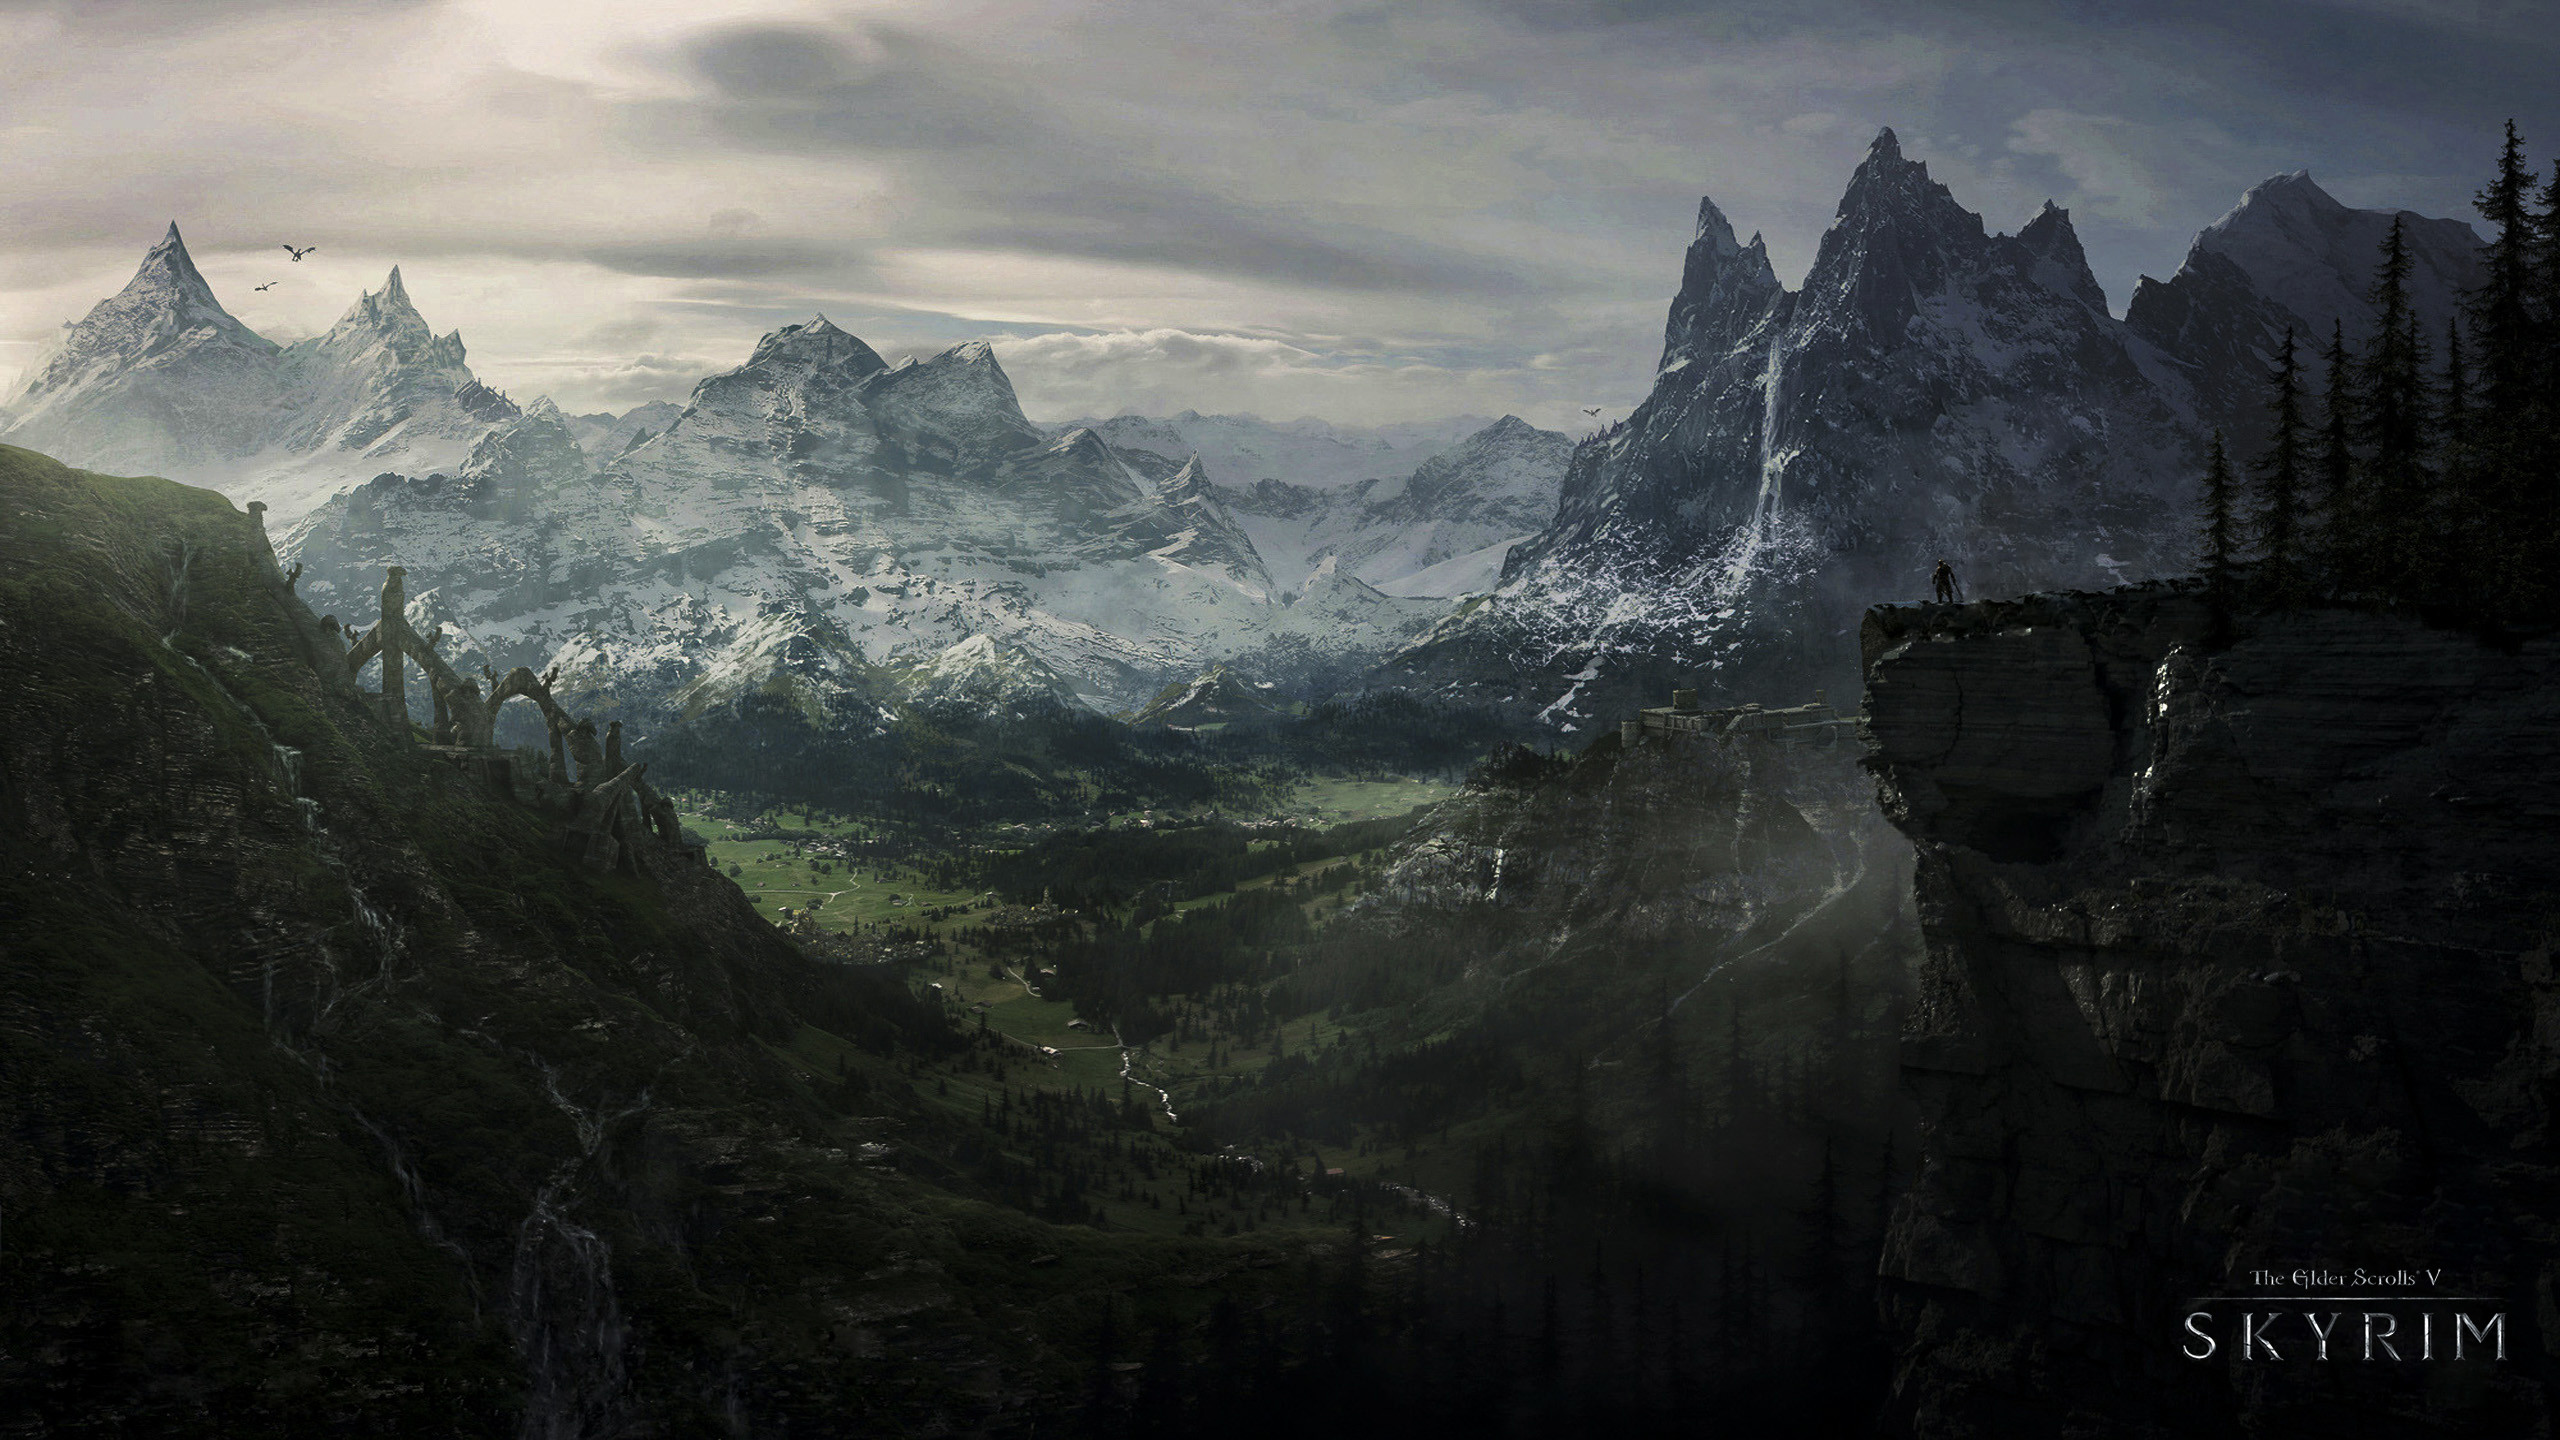 Elder Scrolls 6 Wallpaper: Skyrim 4K Wallpaper (57+ Images